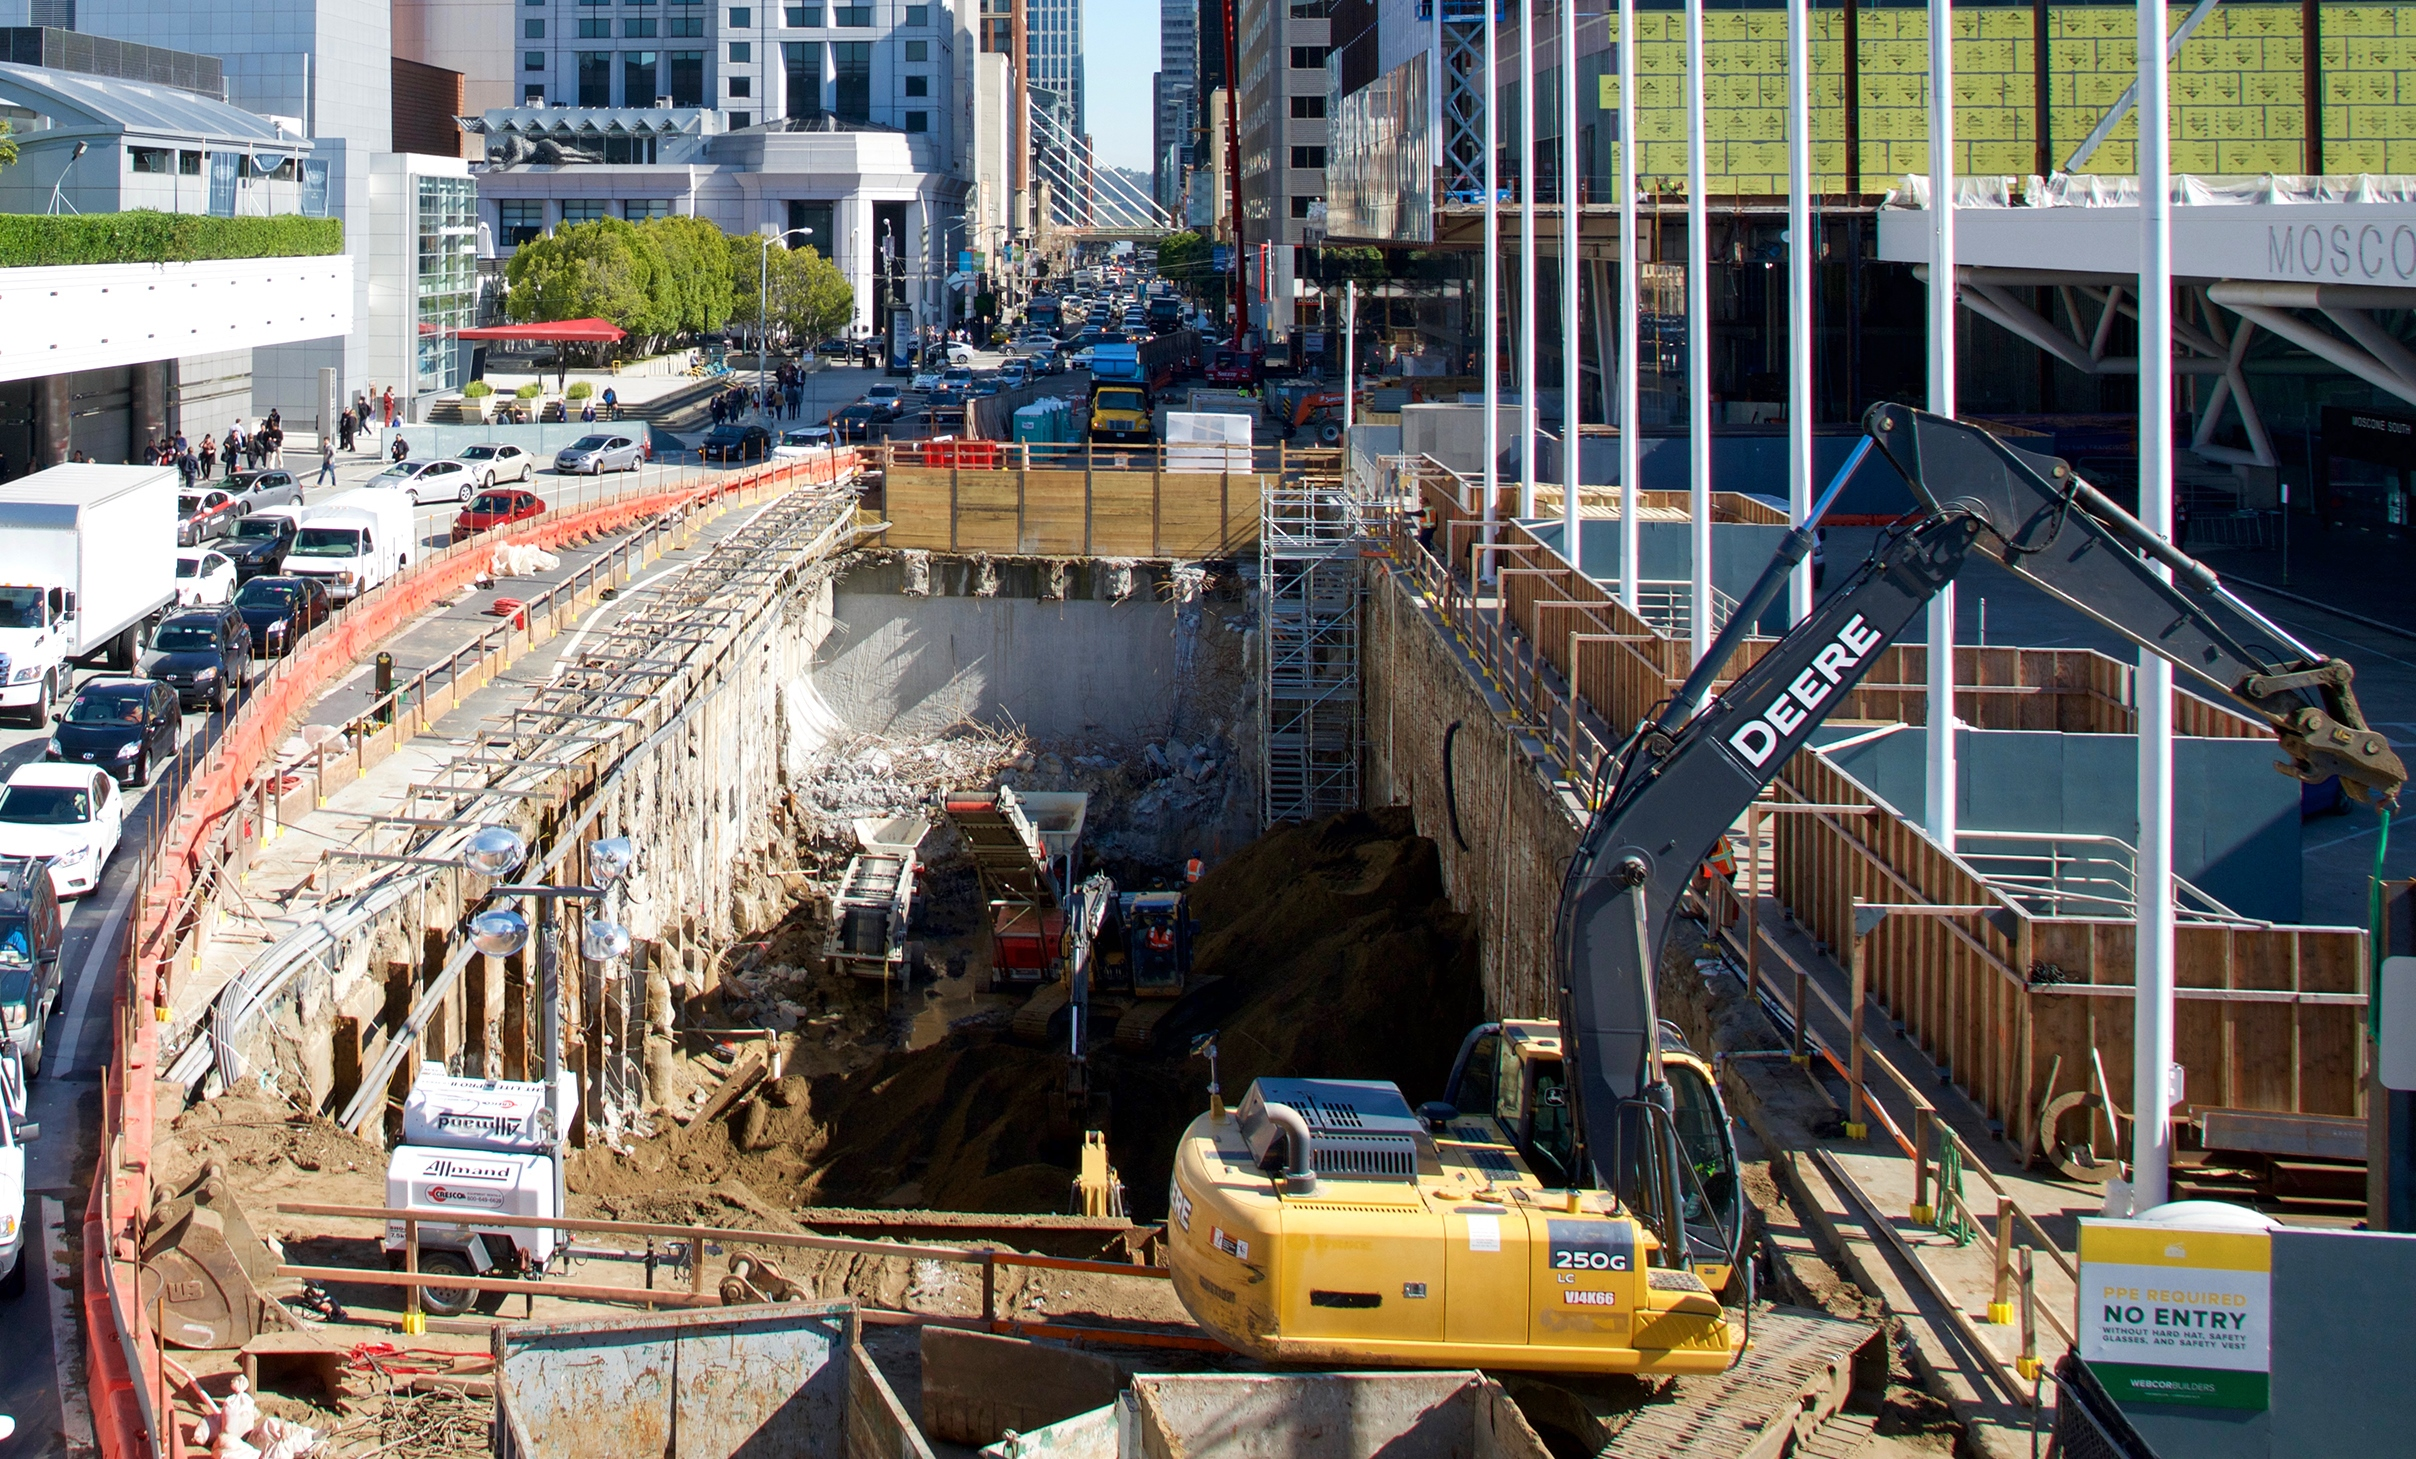 Workers digging a hole near Moscone Center.